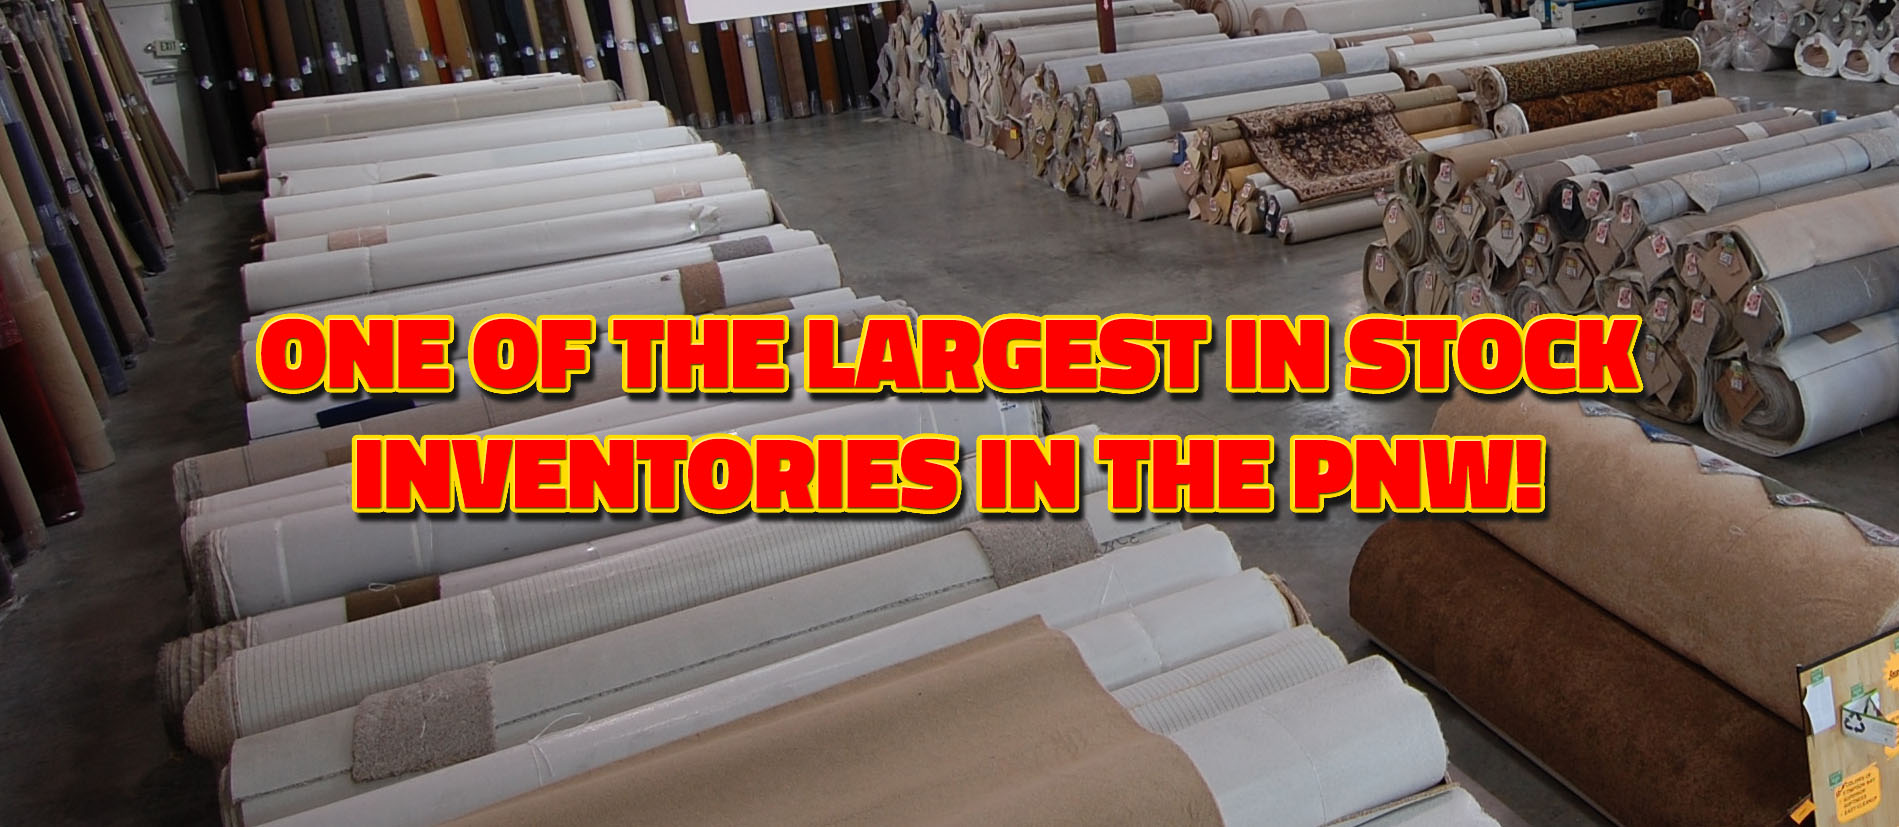 One Of The Largest In Stock Inventories In The Pacific Northwest!